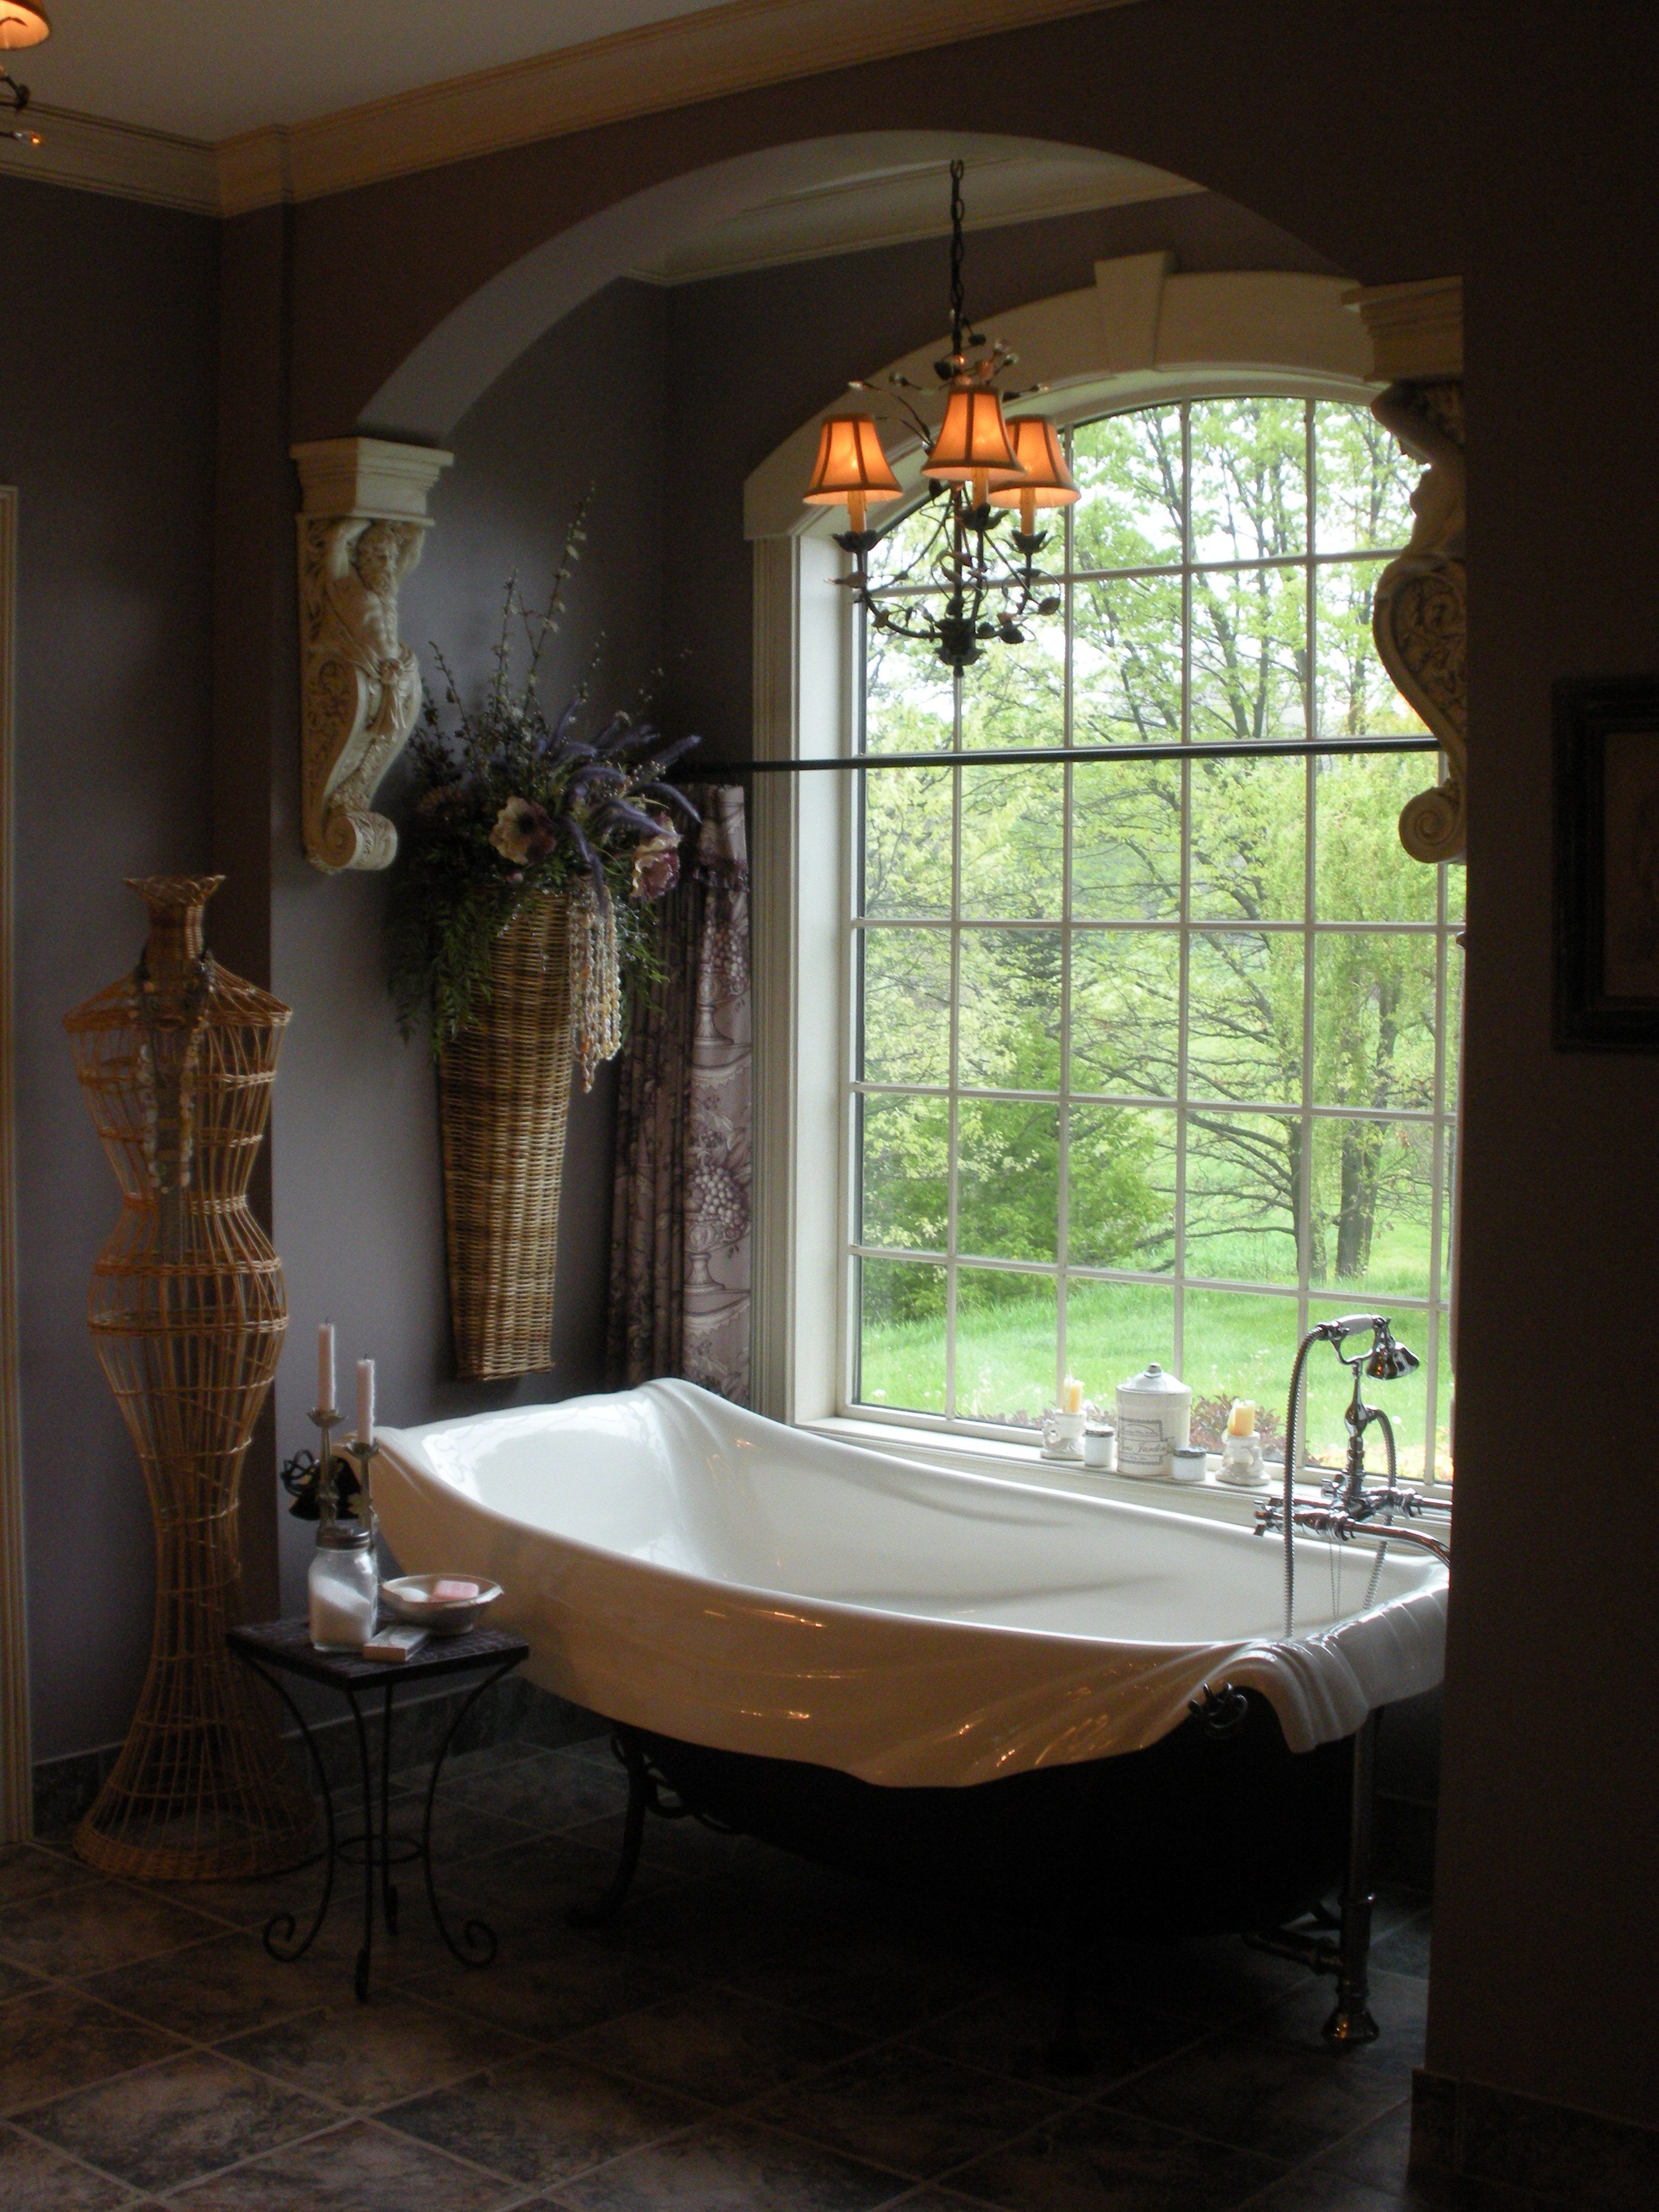 Bedroom Bathroom Beautiful Design And Decoration Of: Marat-like Bath With White Swags Of Porcelain...and A View